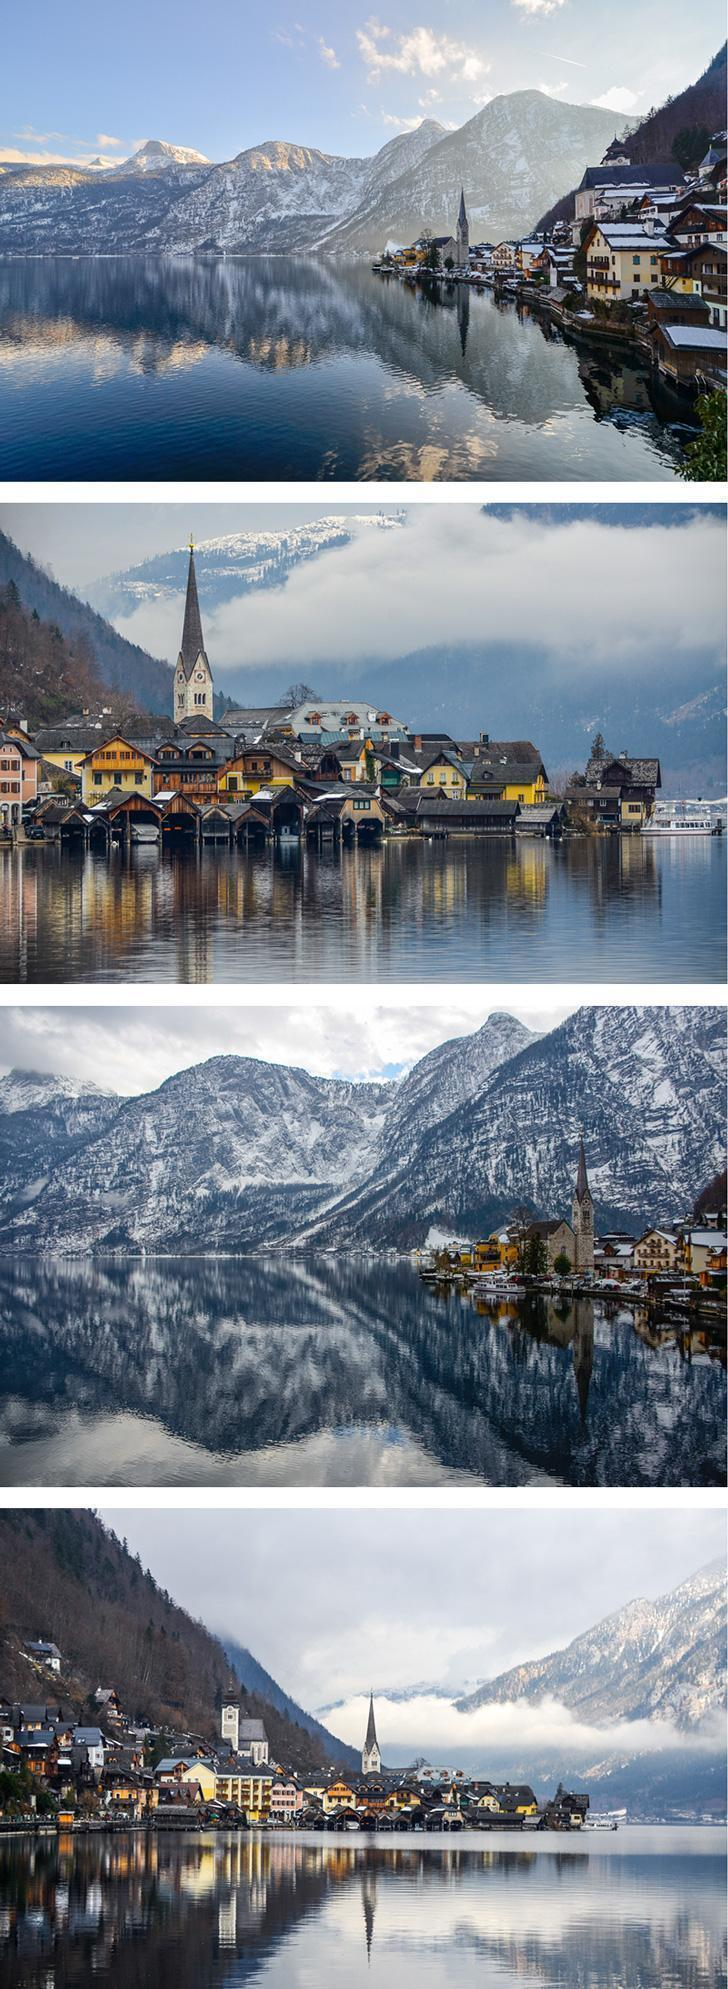 It's no wonder the Chinese love Hallstatt in winter. The Austrian town is simply charming!